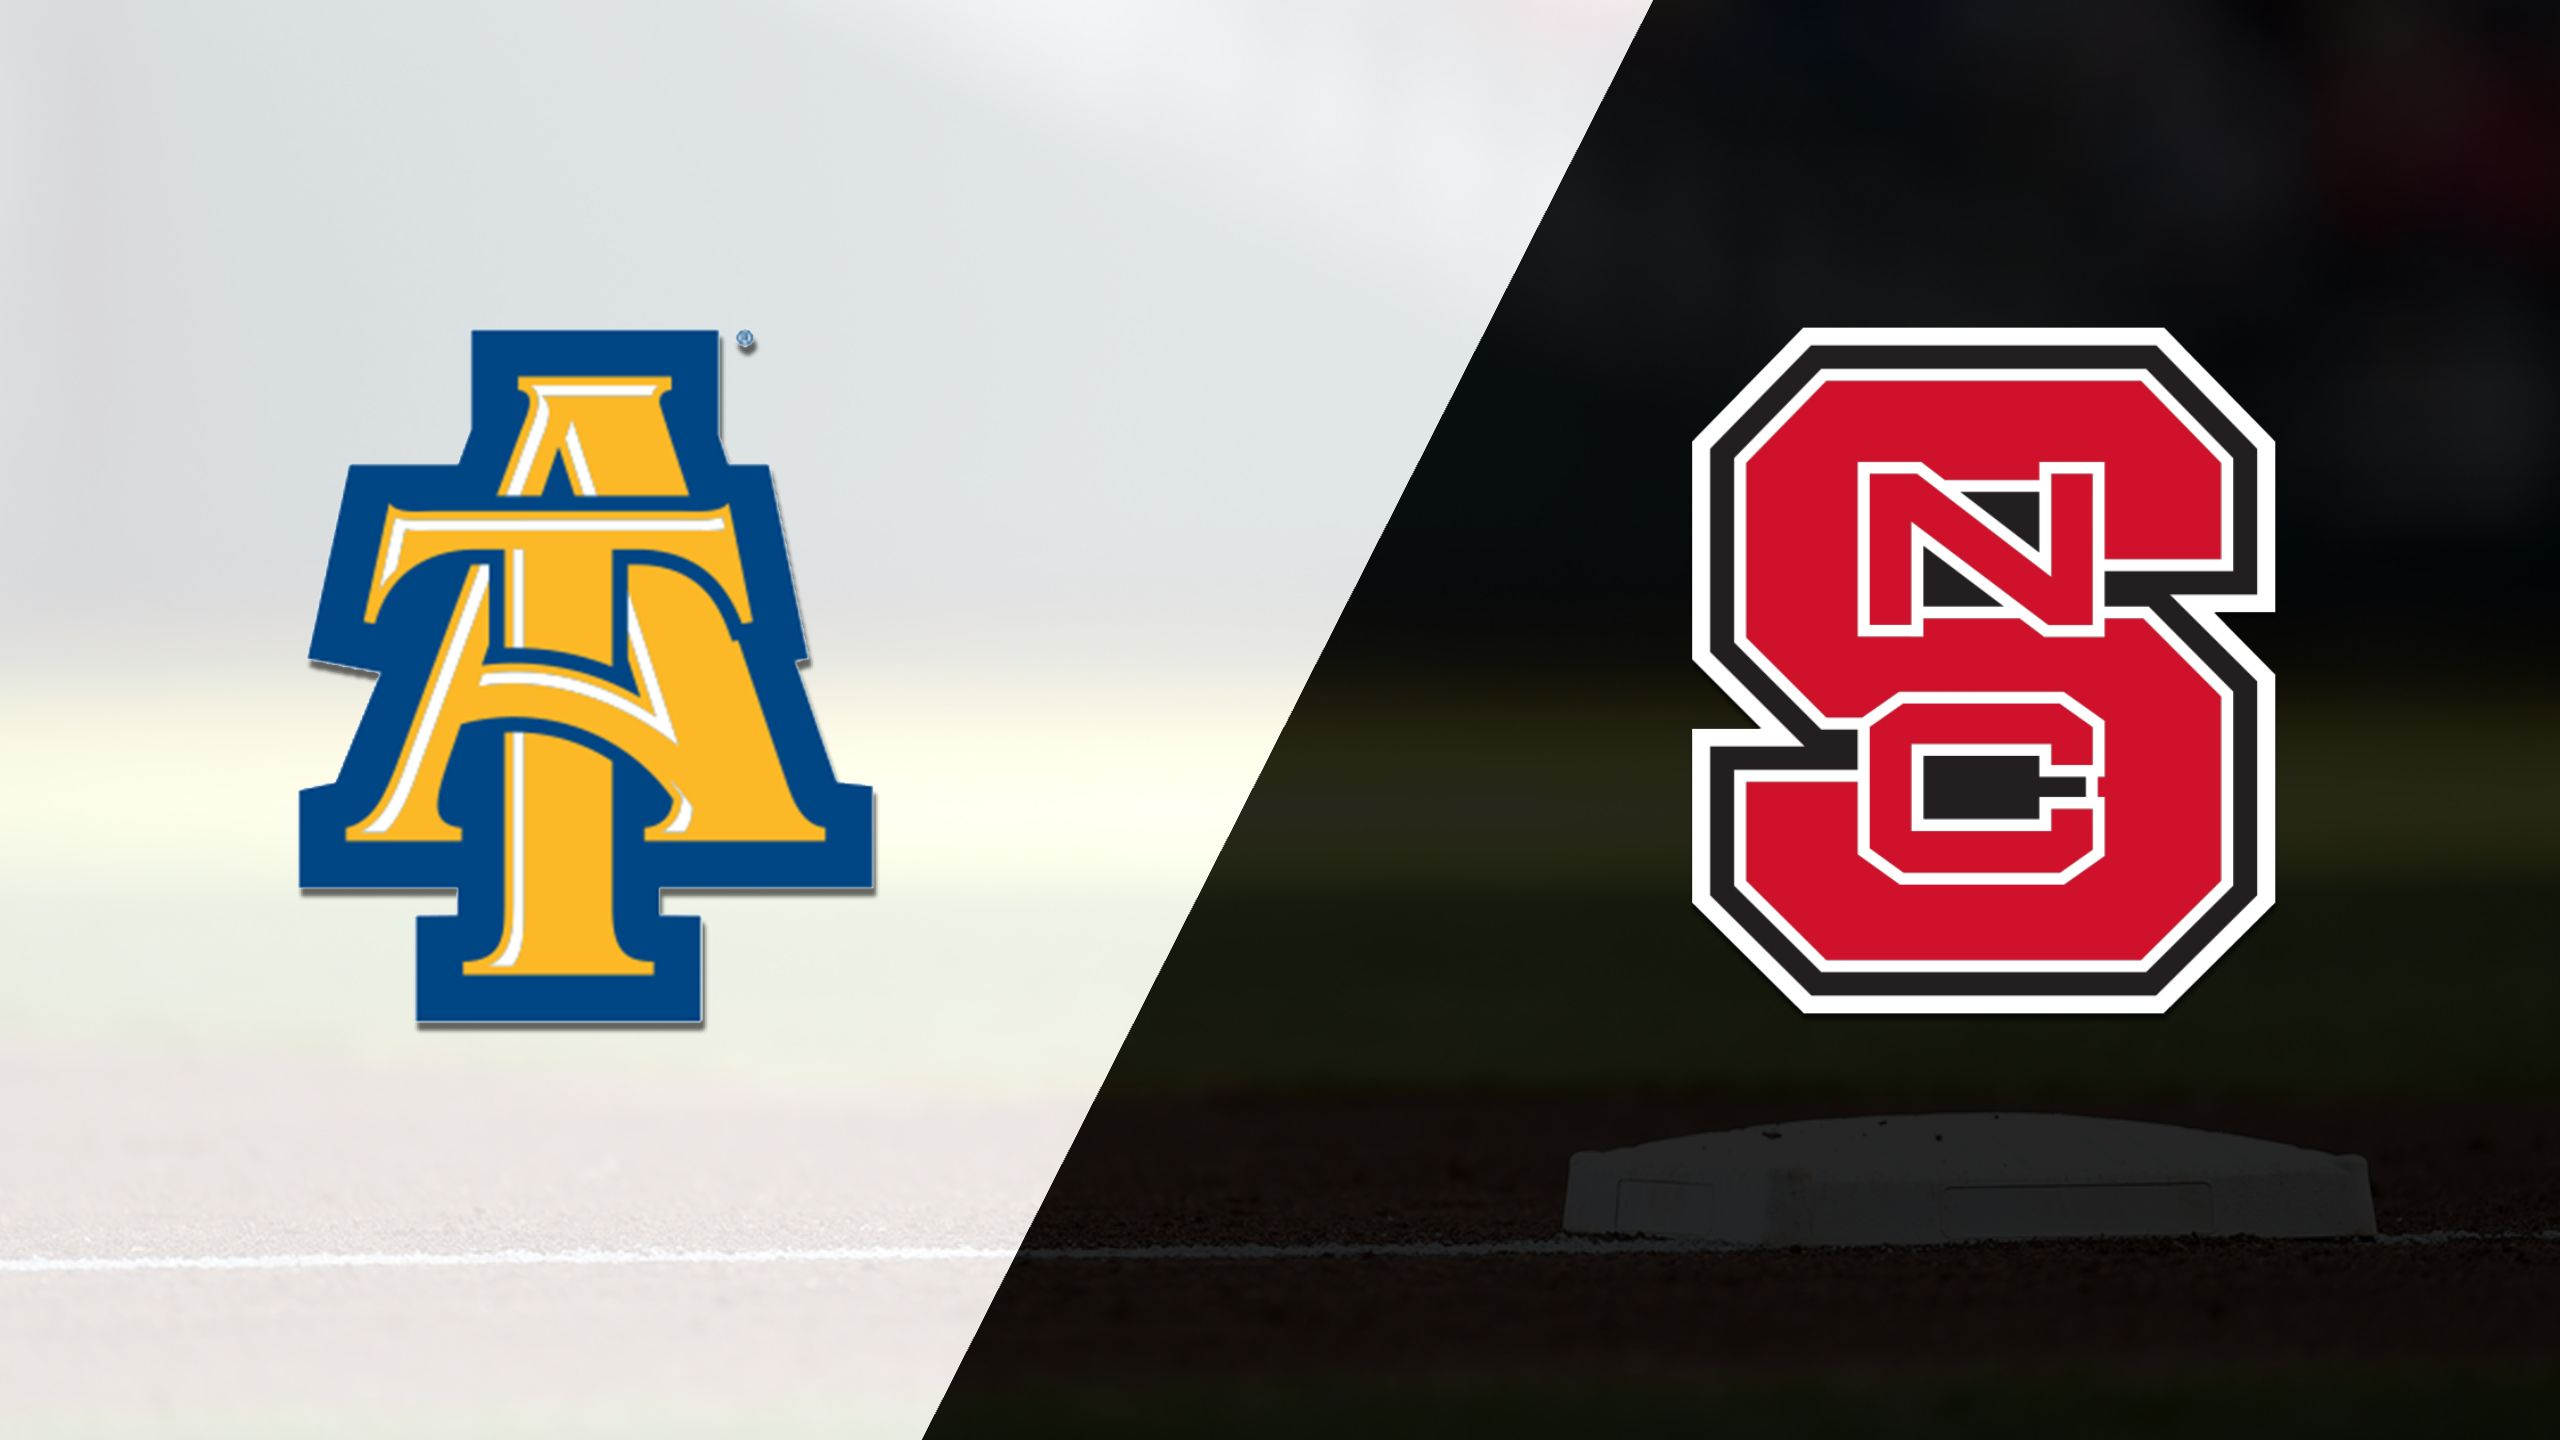 North Carolina A&T vs. NC State (Baseball)